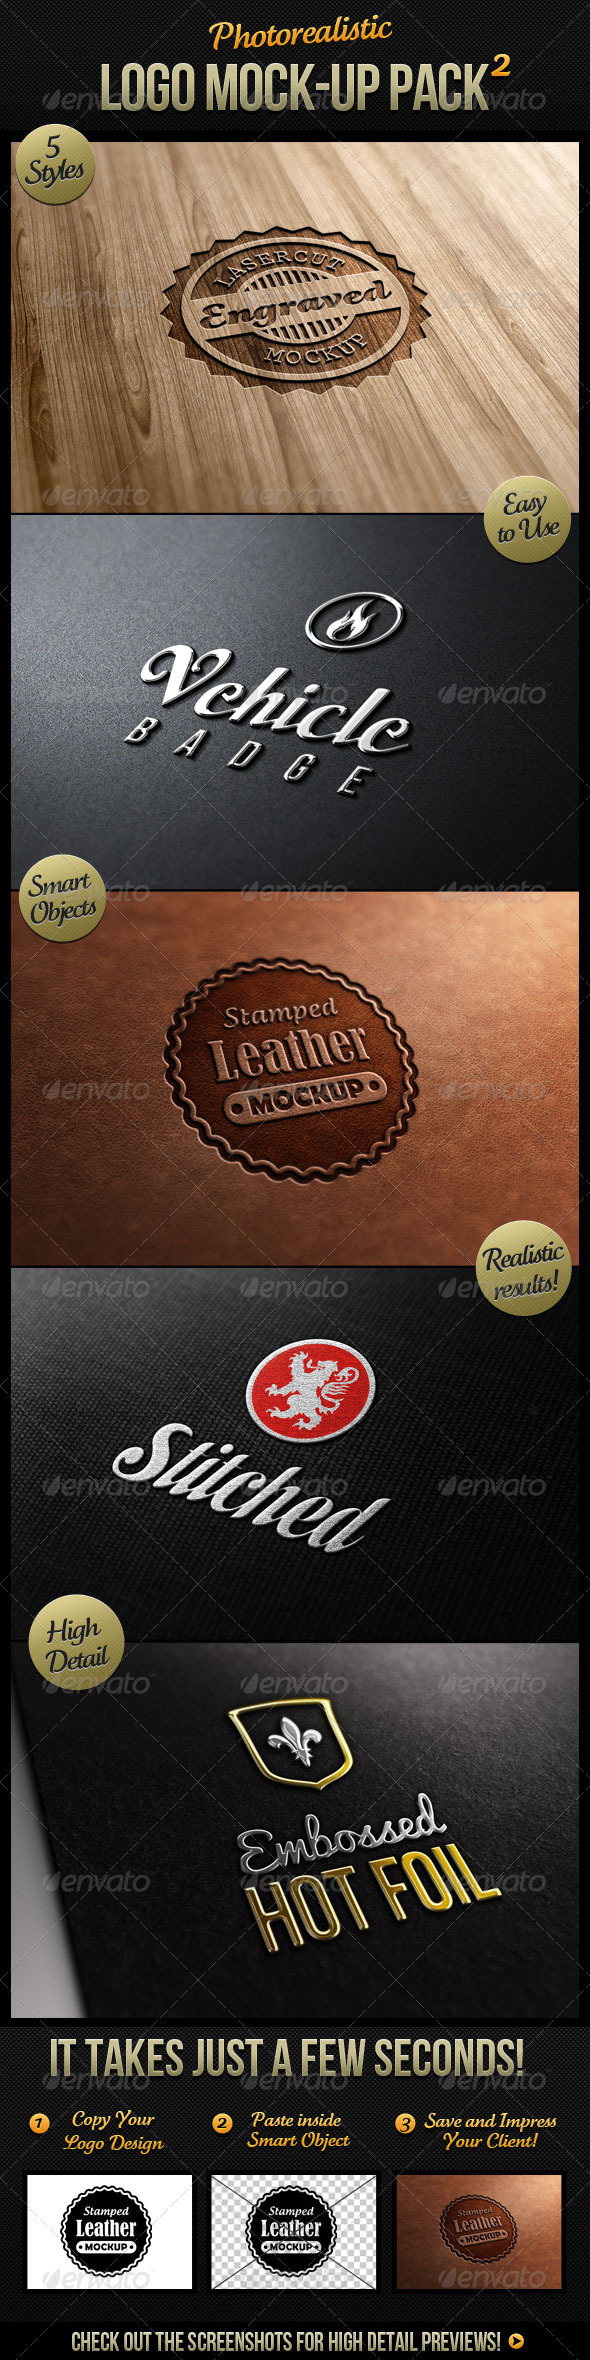 Photorealistic Logo Mock-Up Pack 2 - Logo Product Mock-Ups